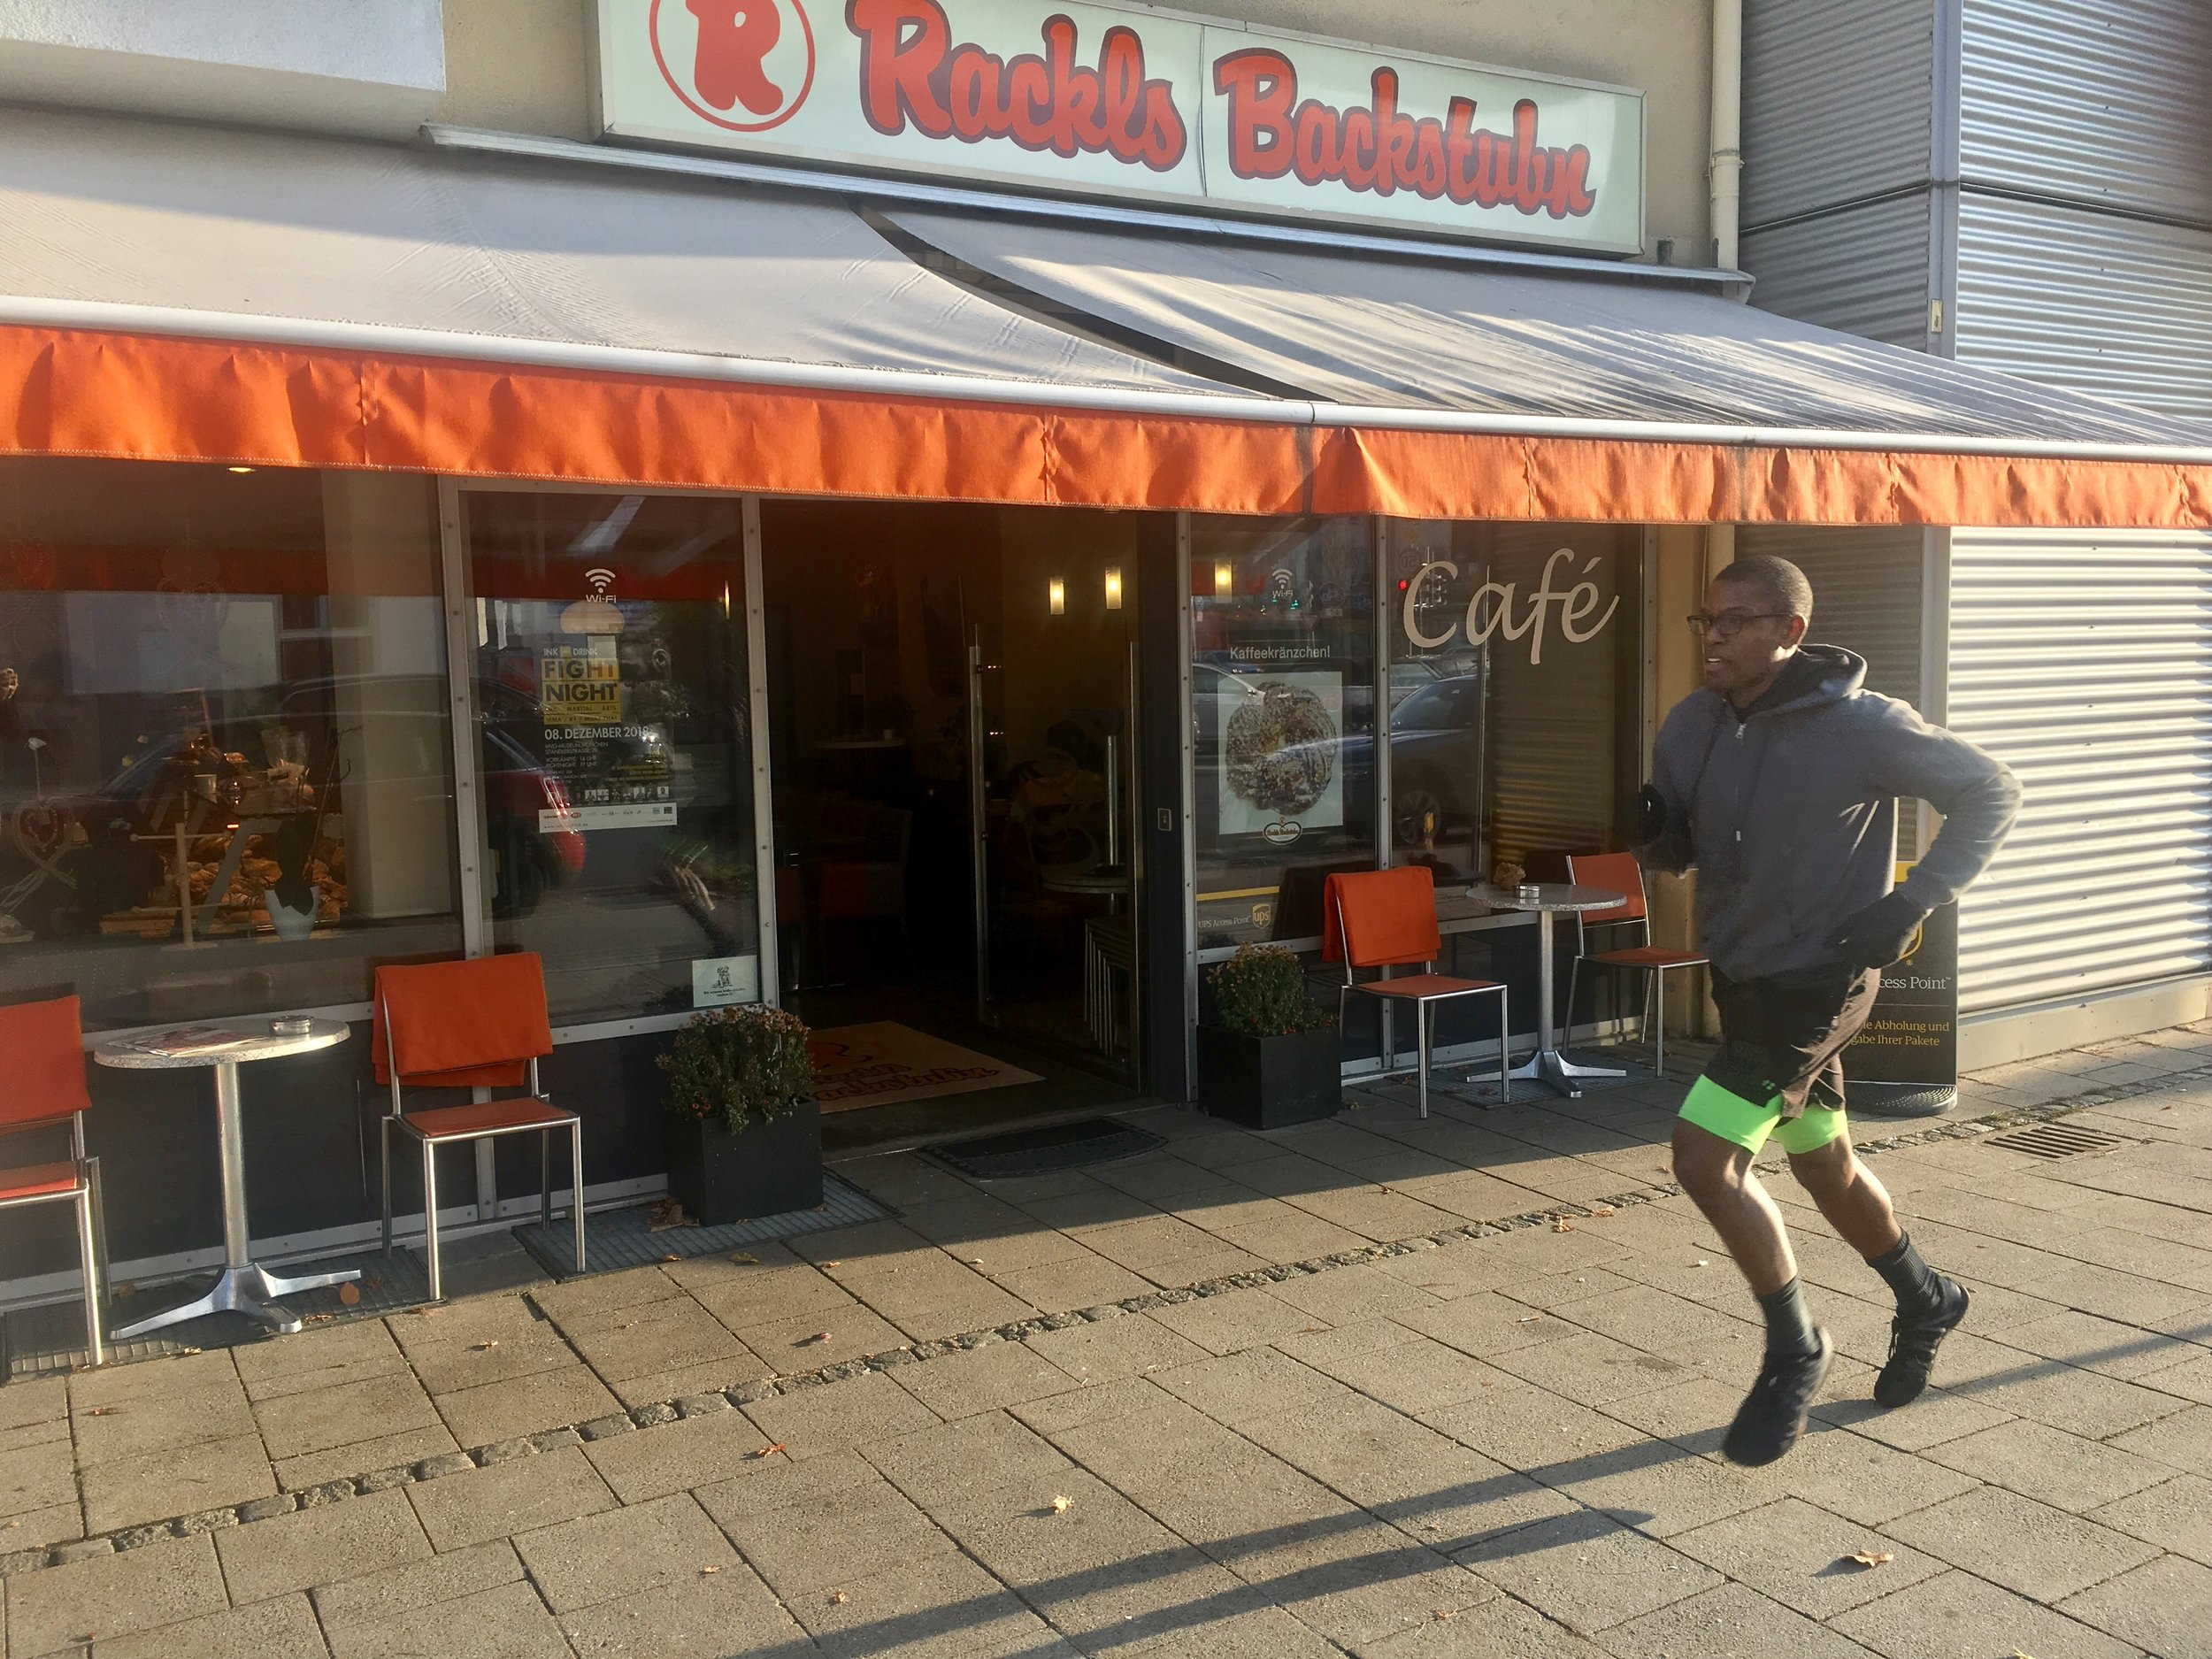 Running by favorite cafe in Munich, photo by Pavel R.